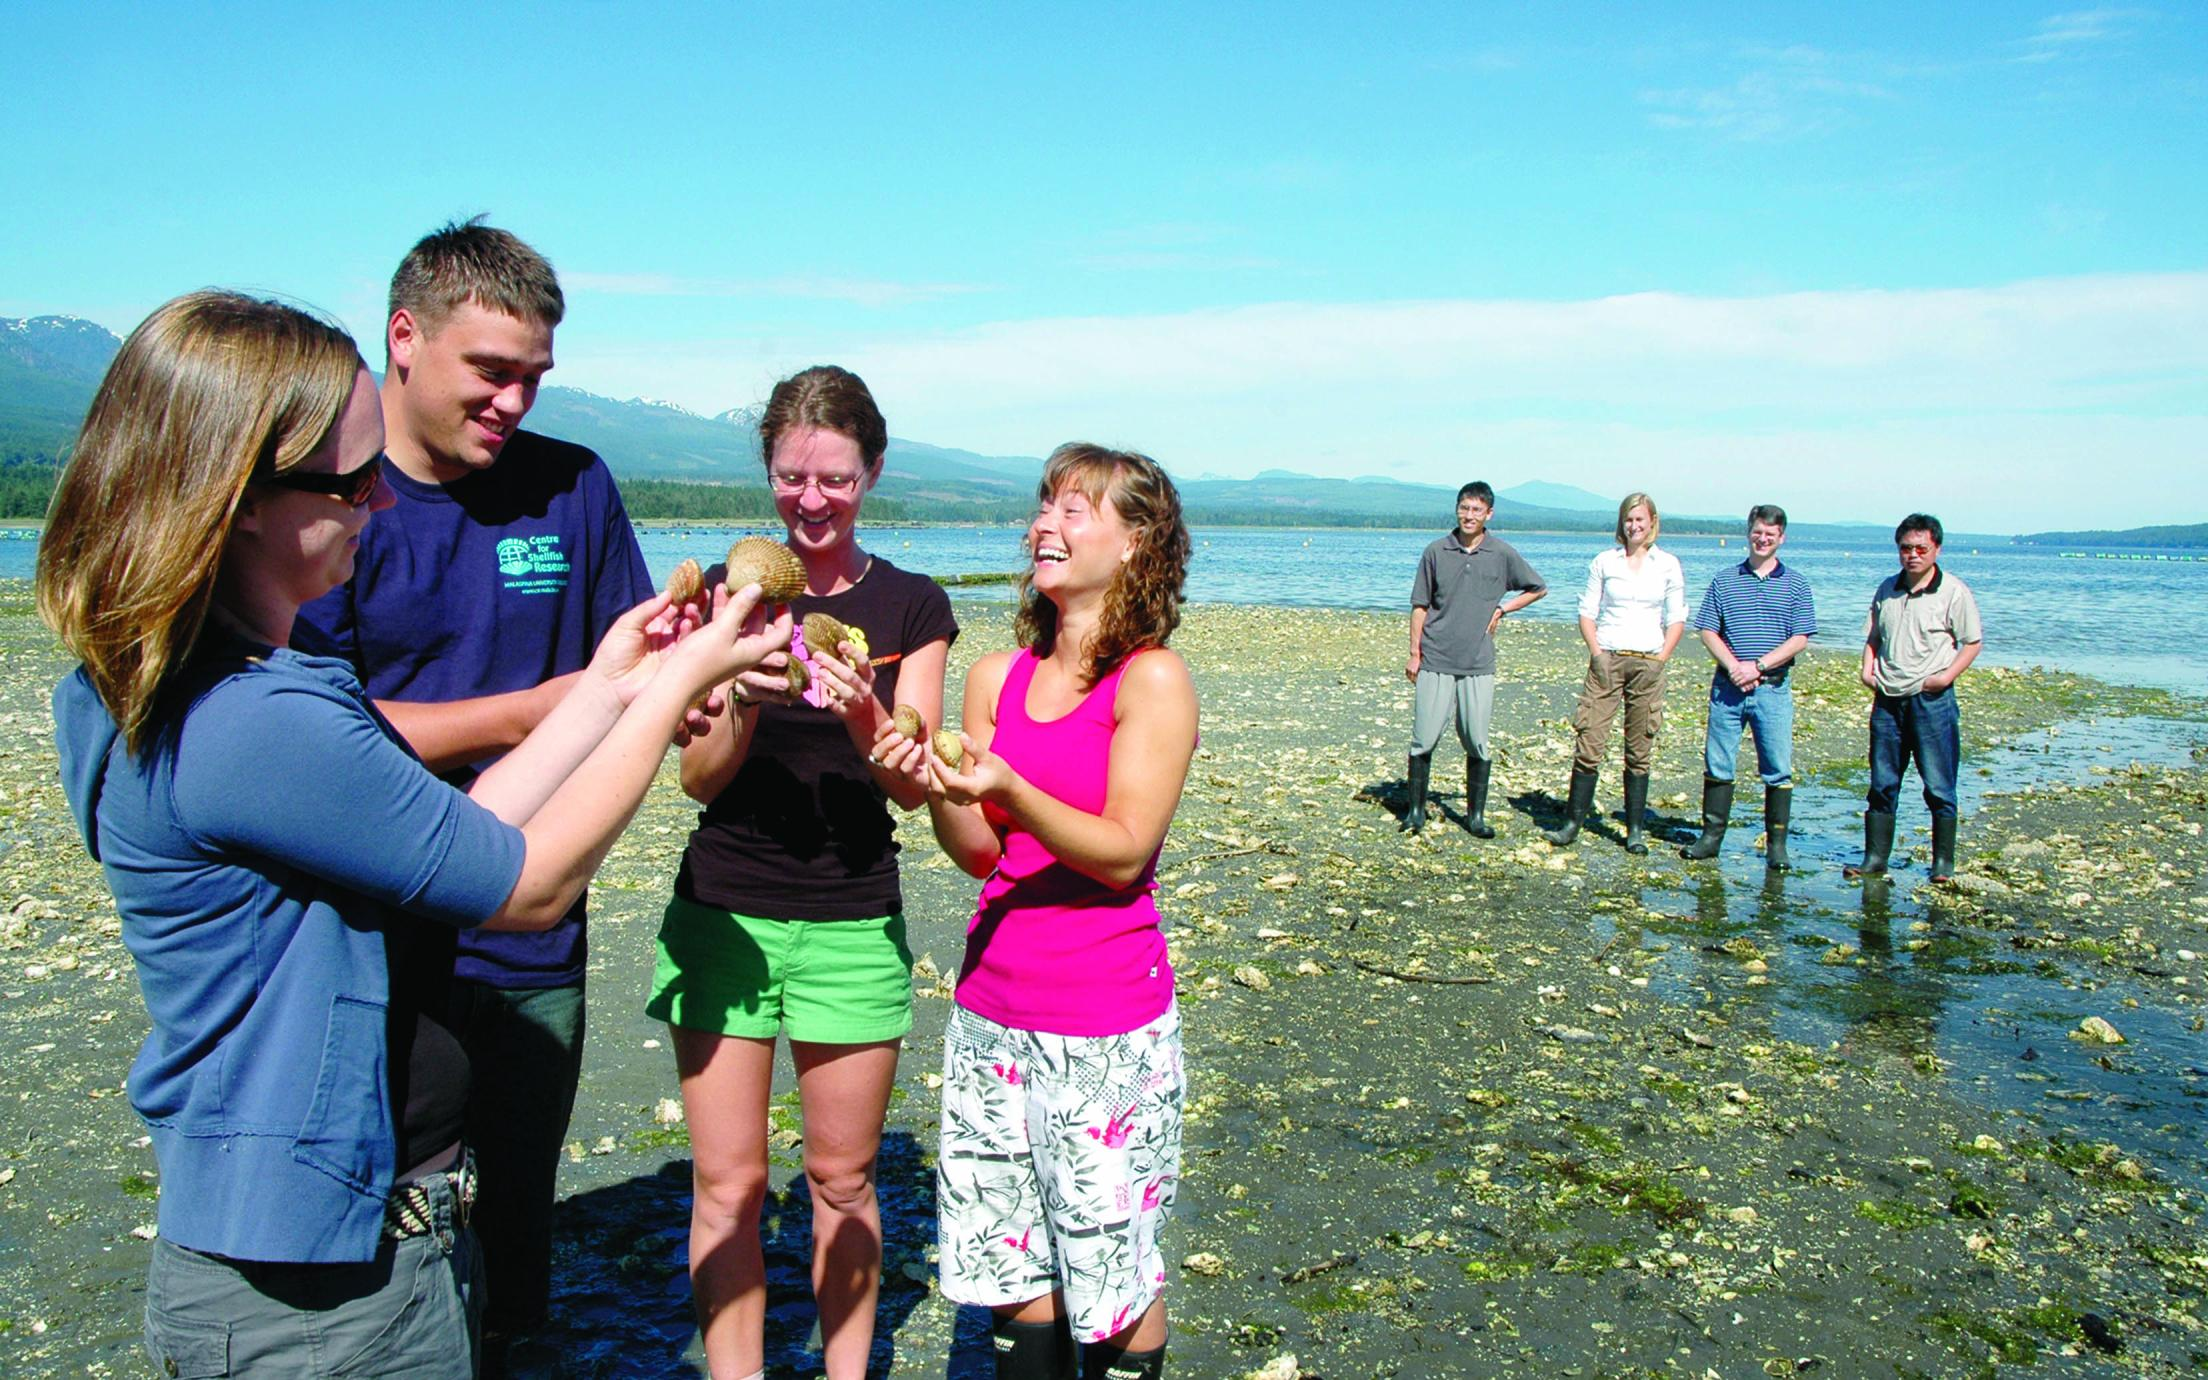 A future Fishery Officer with other students of the Fisheries and Aquaculture Technology program on a field trip